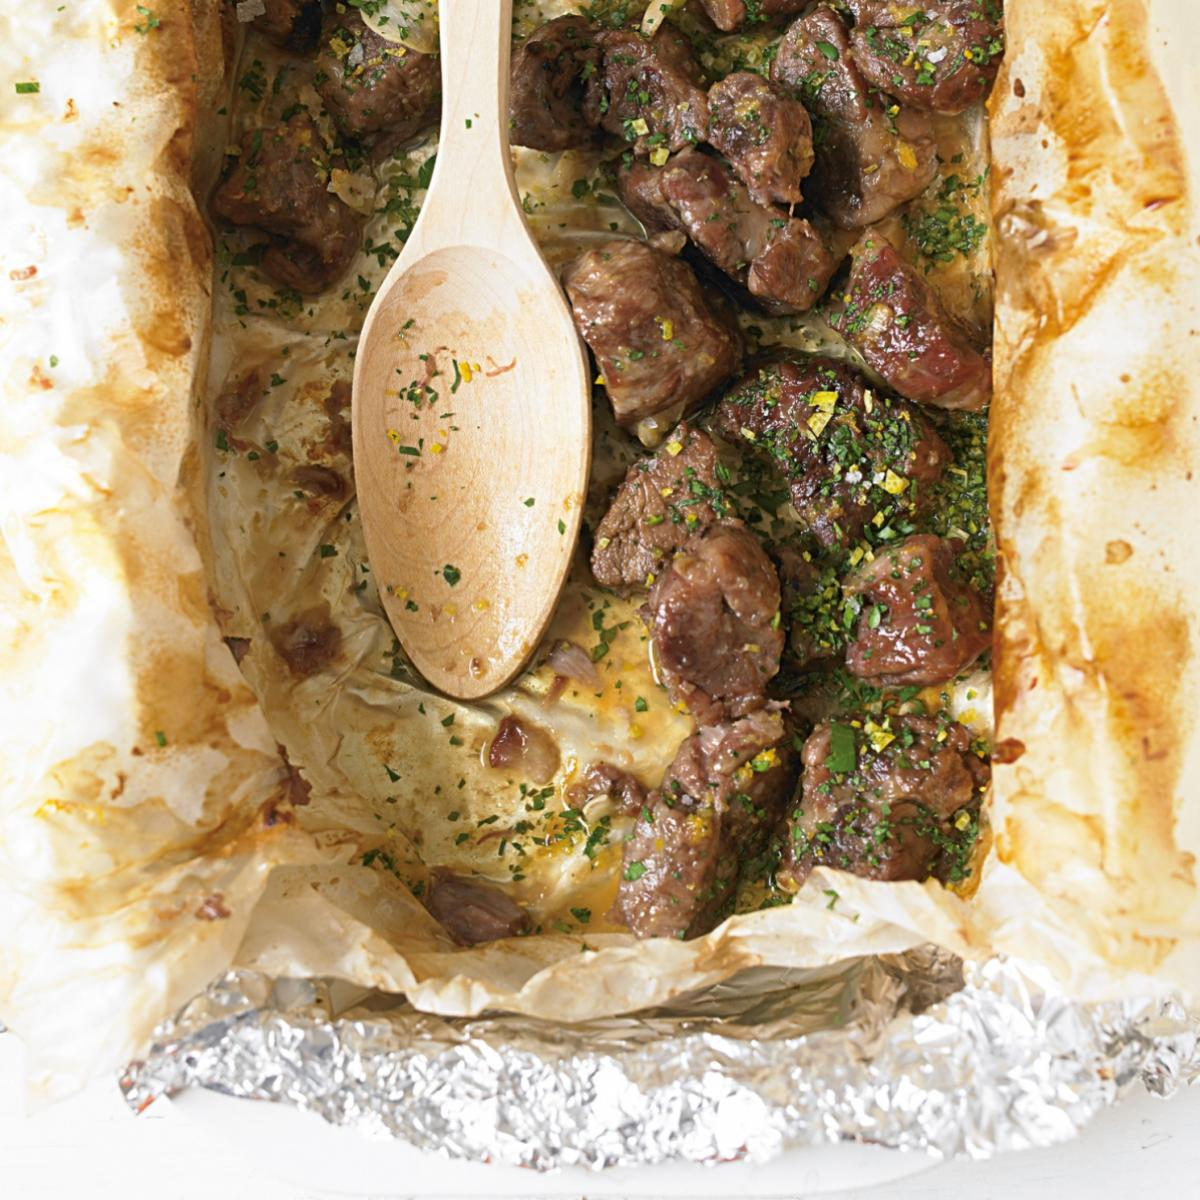 Cheat greek lamb baked with lemon and garlic